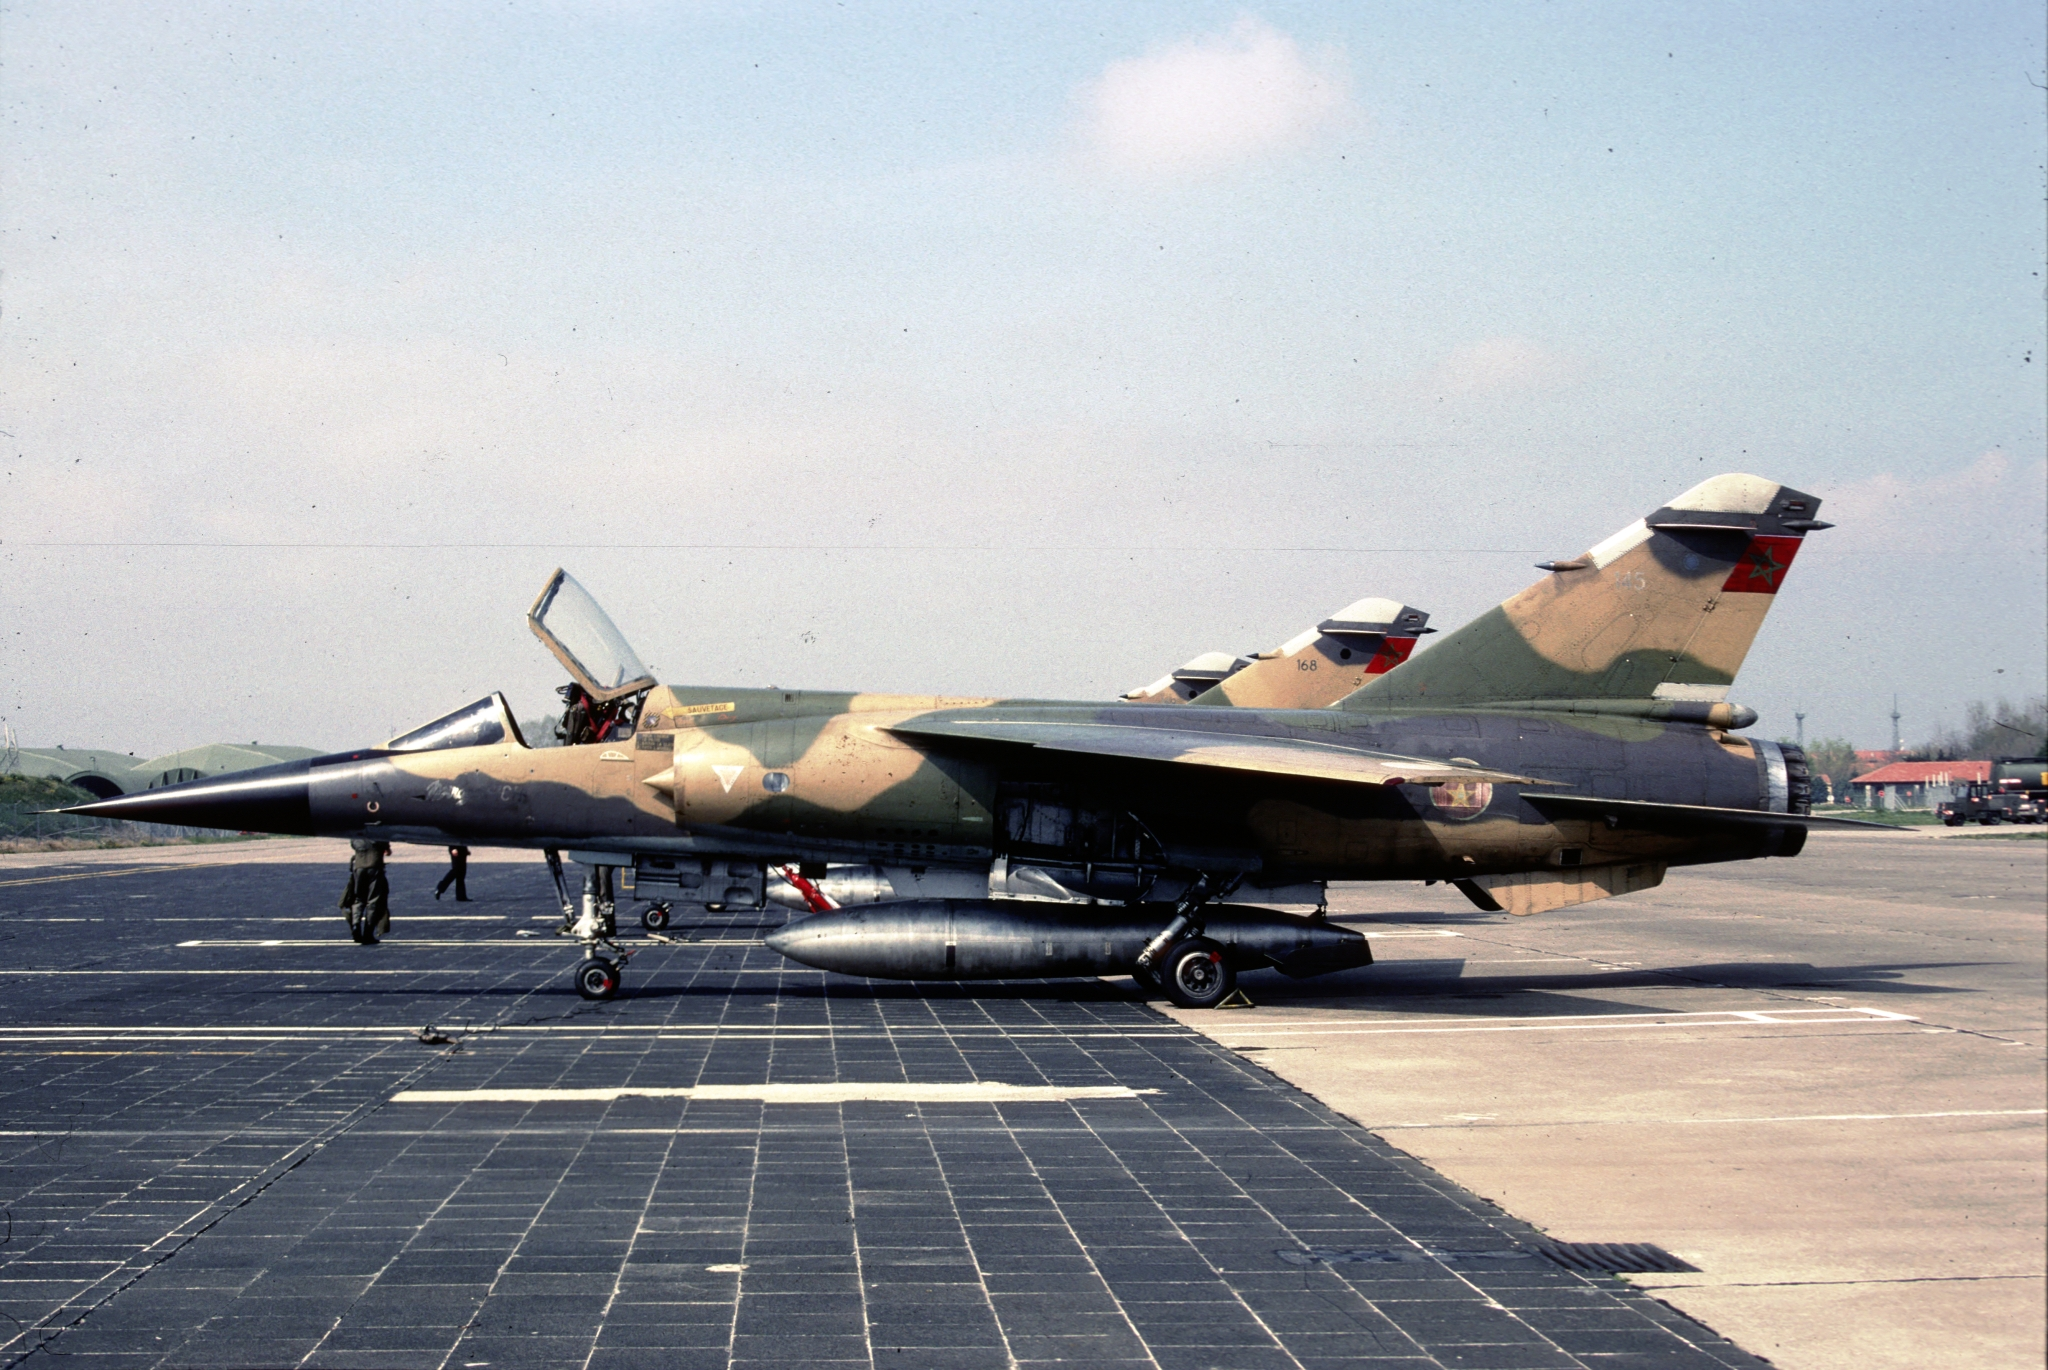 FRA: Photos Mirage F1 - Page 15 32731475218_2f772d57b4_o